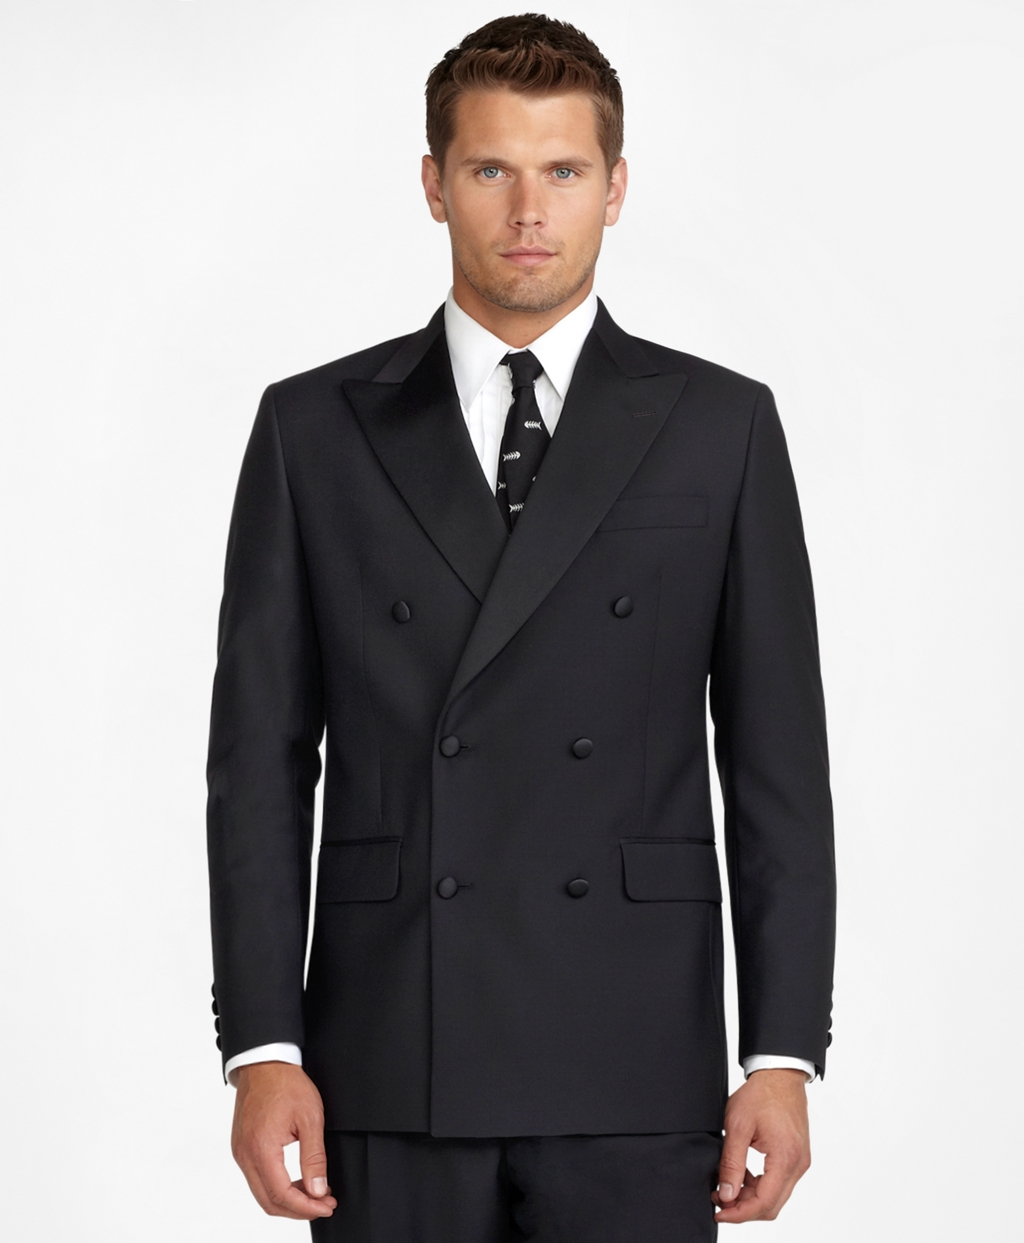 Men's Vintage Style Suits, Classic Suits Brooks Brothers Mens Double-Breasted Tuxedo Jacket $449.00 AT vintagedancer.com